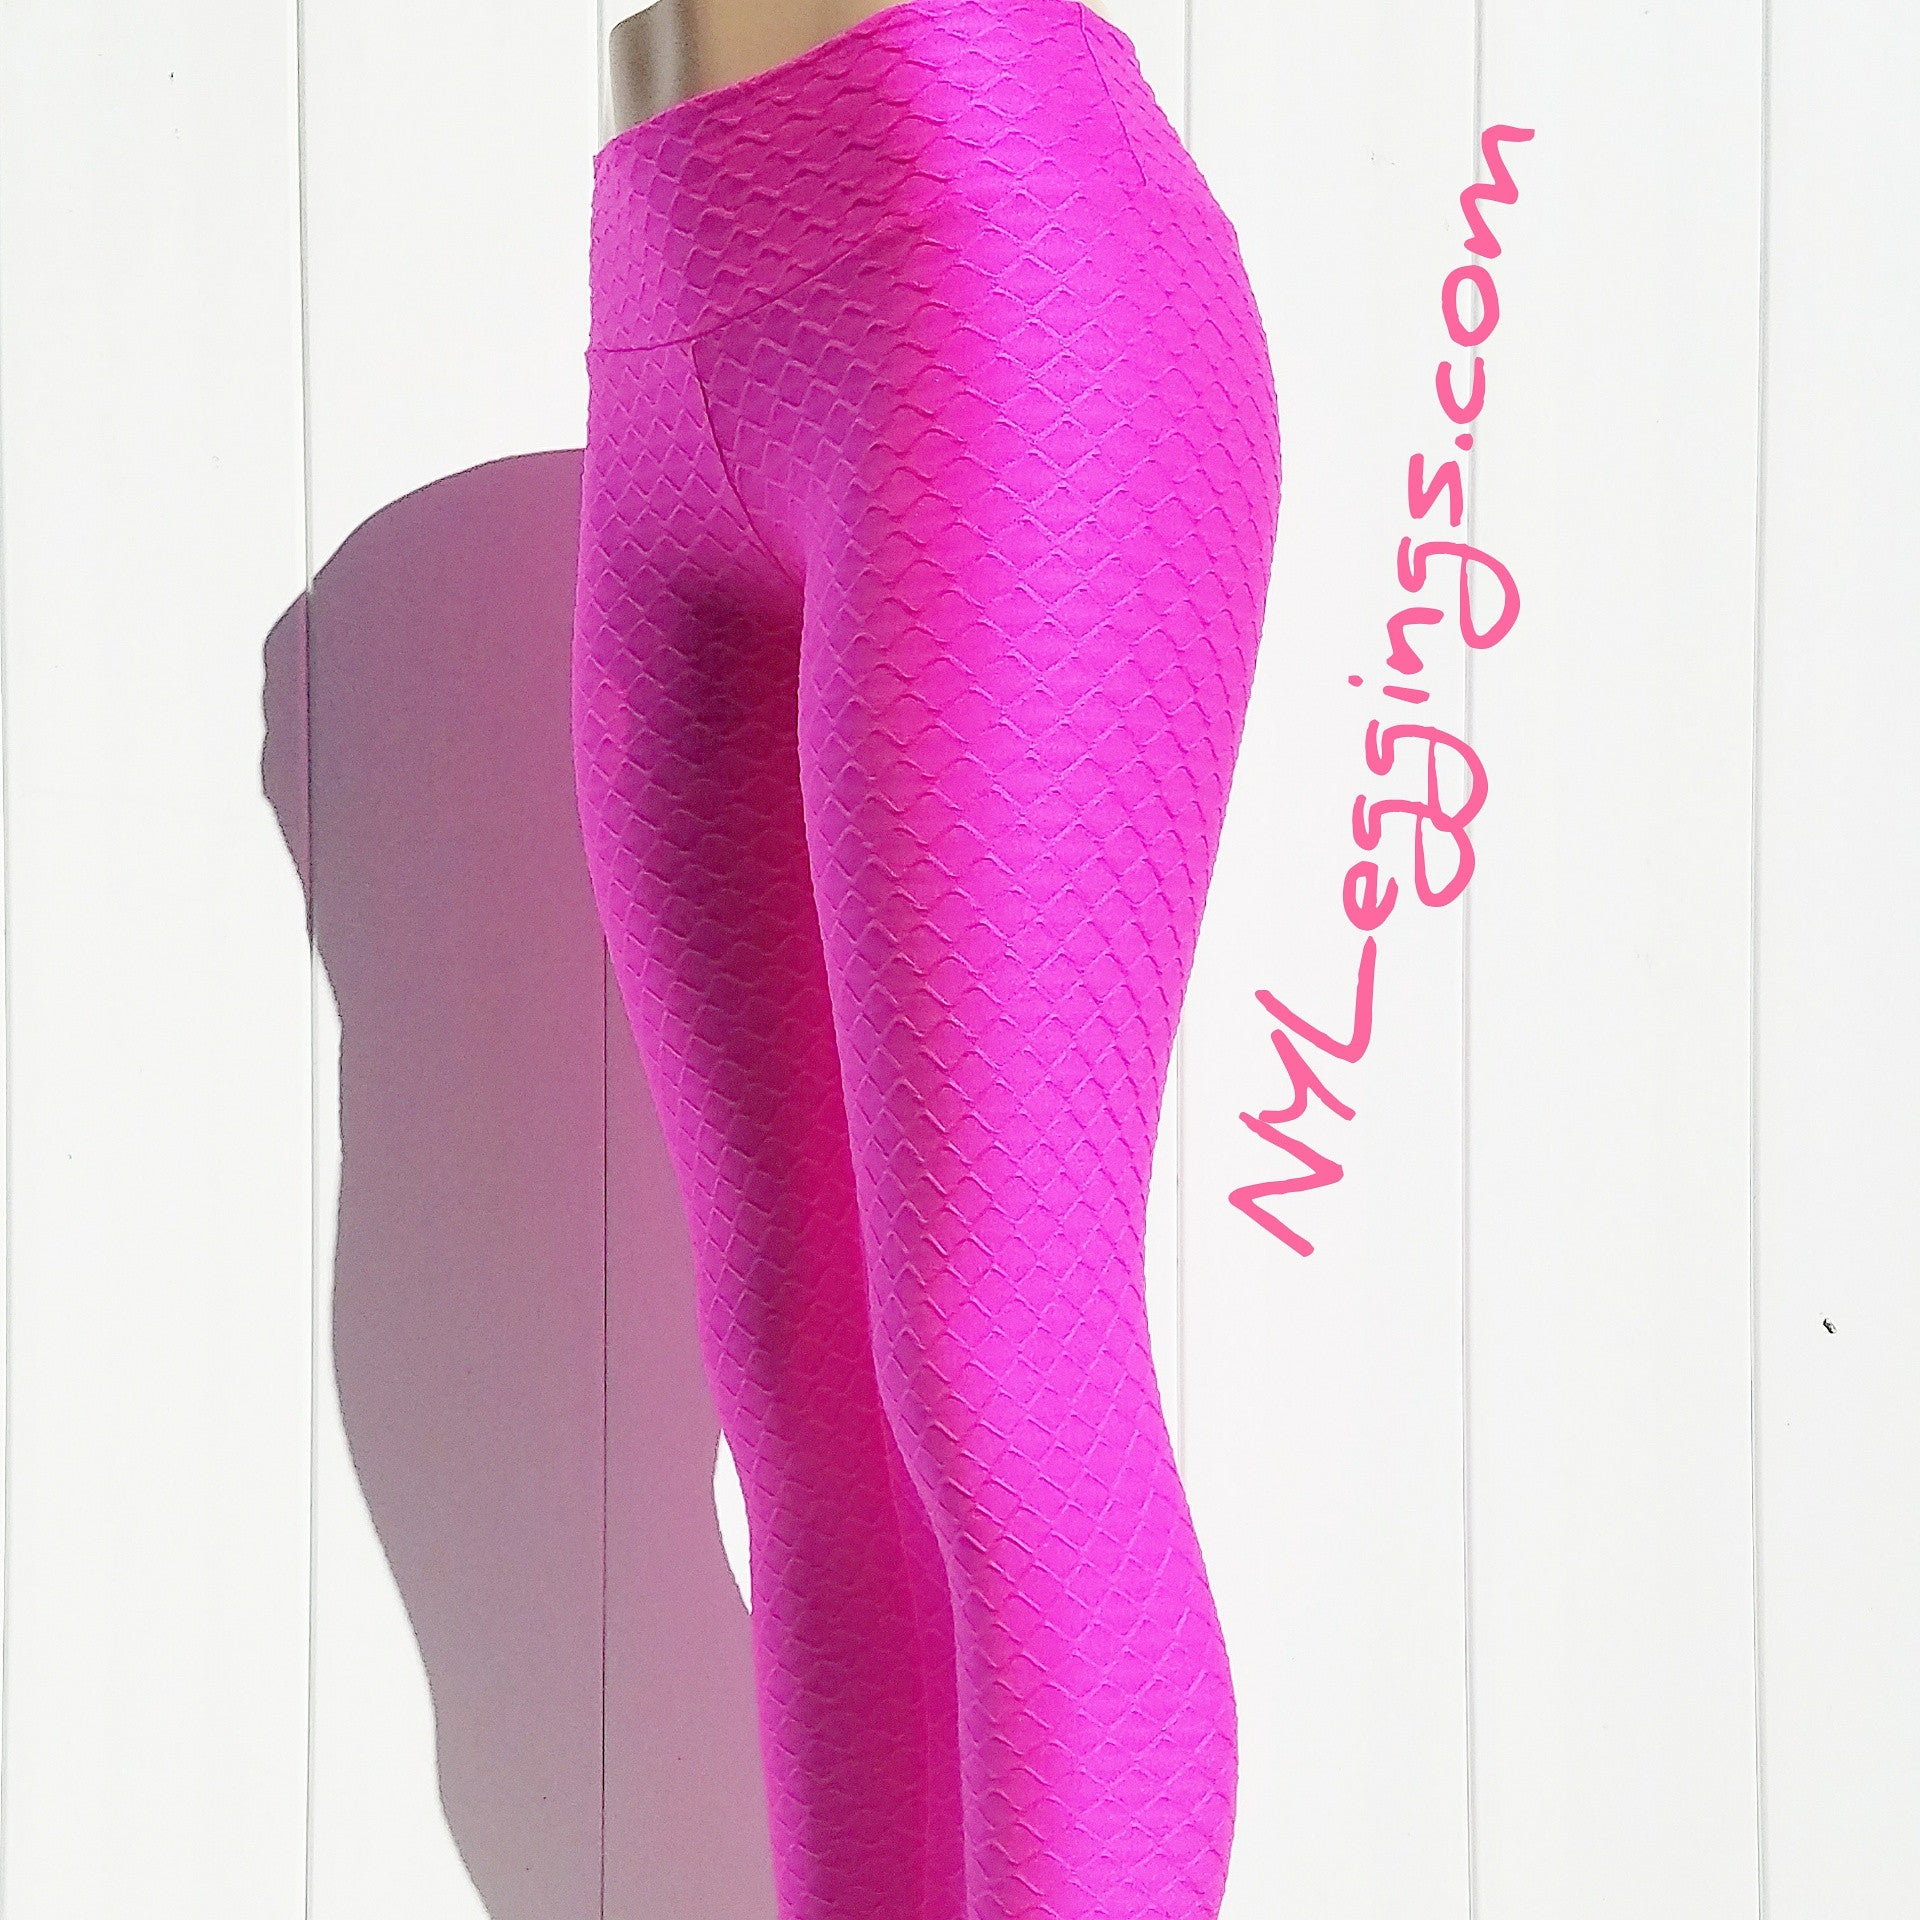 Brazilian Wave Pink Tights